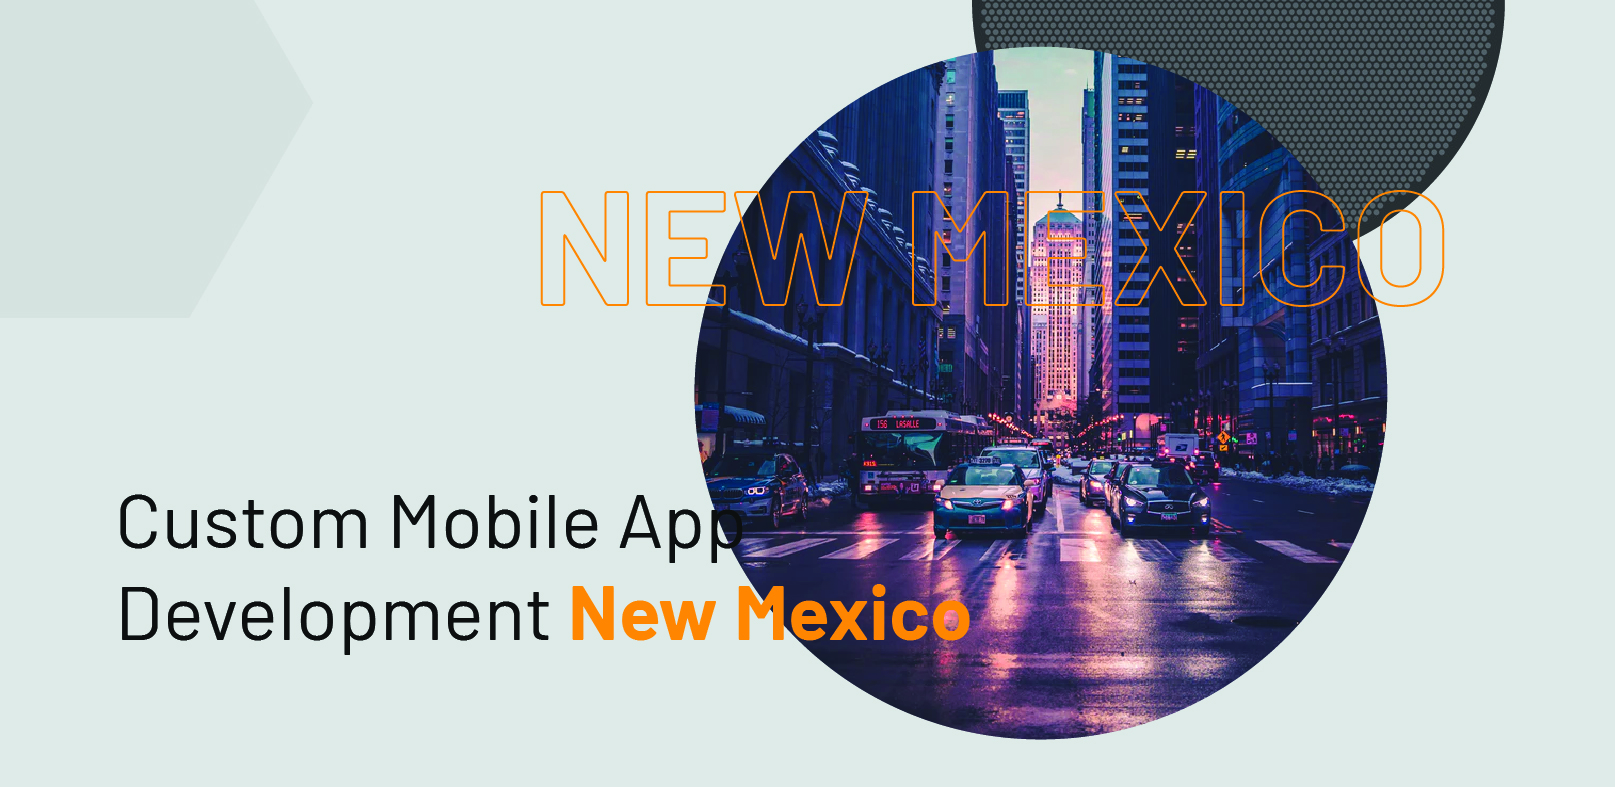 Custom Mobile App Development In New Mexico - WebClues Infotech